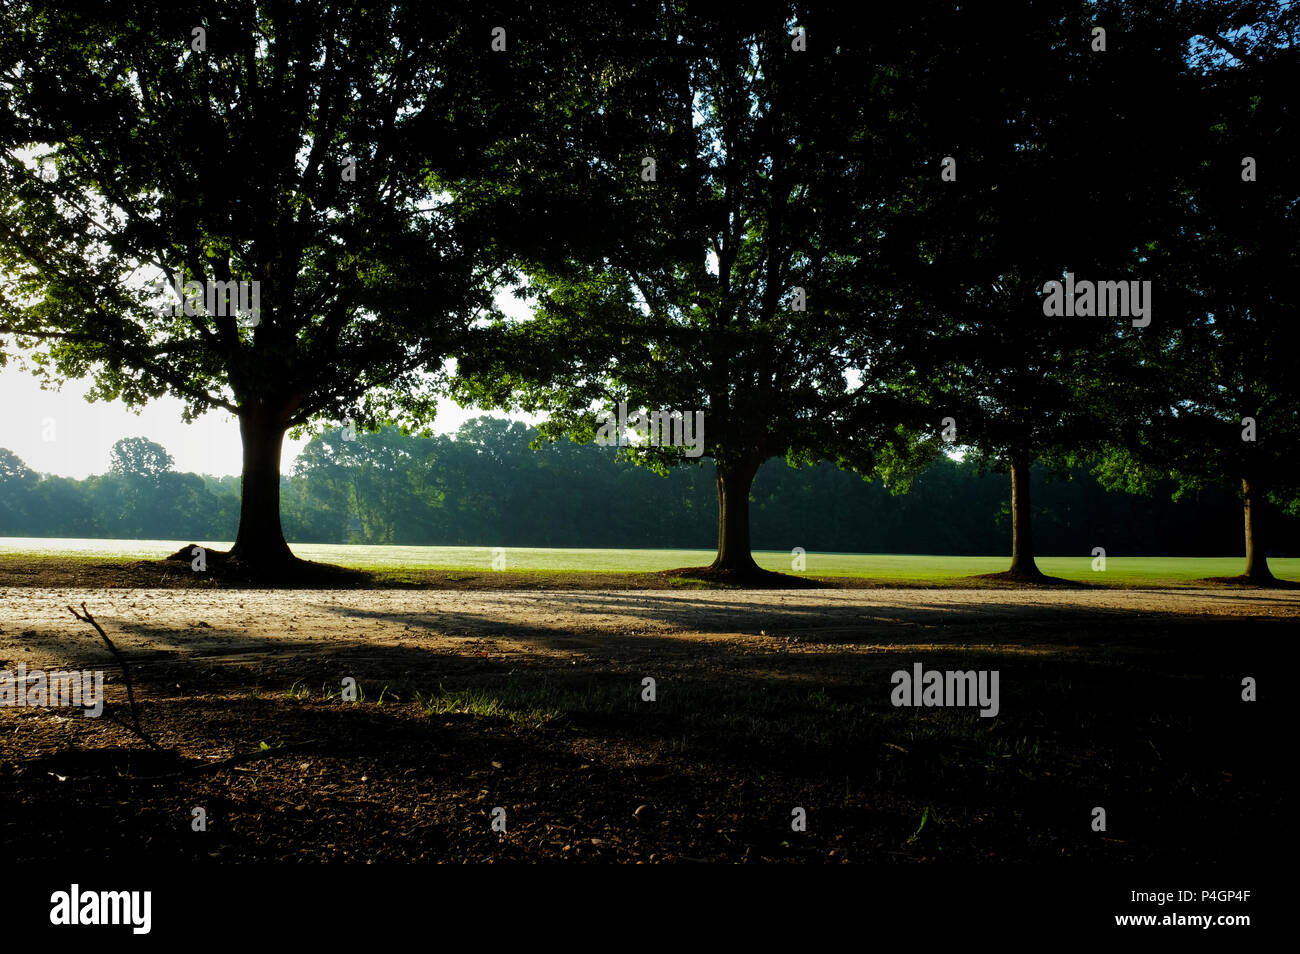 A row of mighty oaks line the drive at Lake Benson Park in Garner North Carolina as the early morning sun filters through the canopy on the first day  Stock Photo